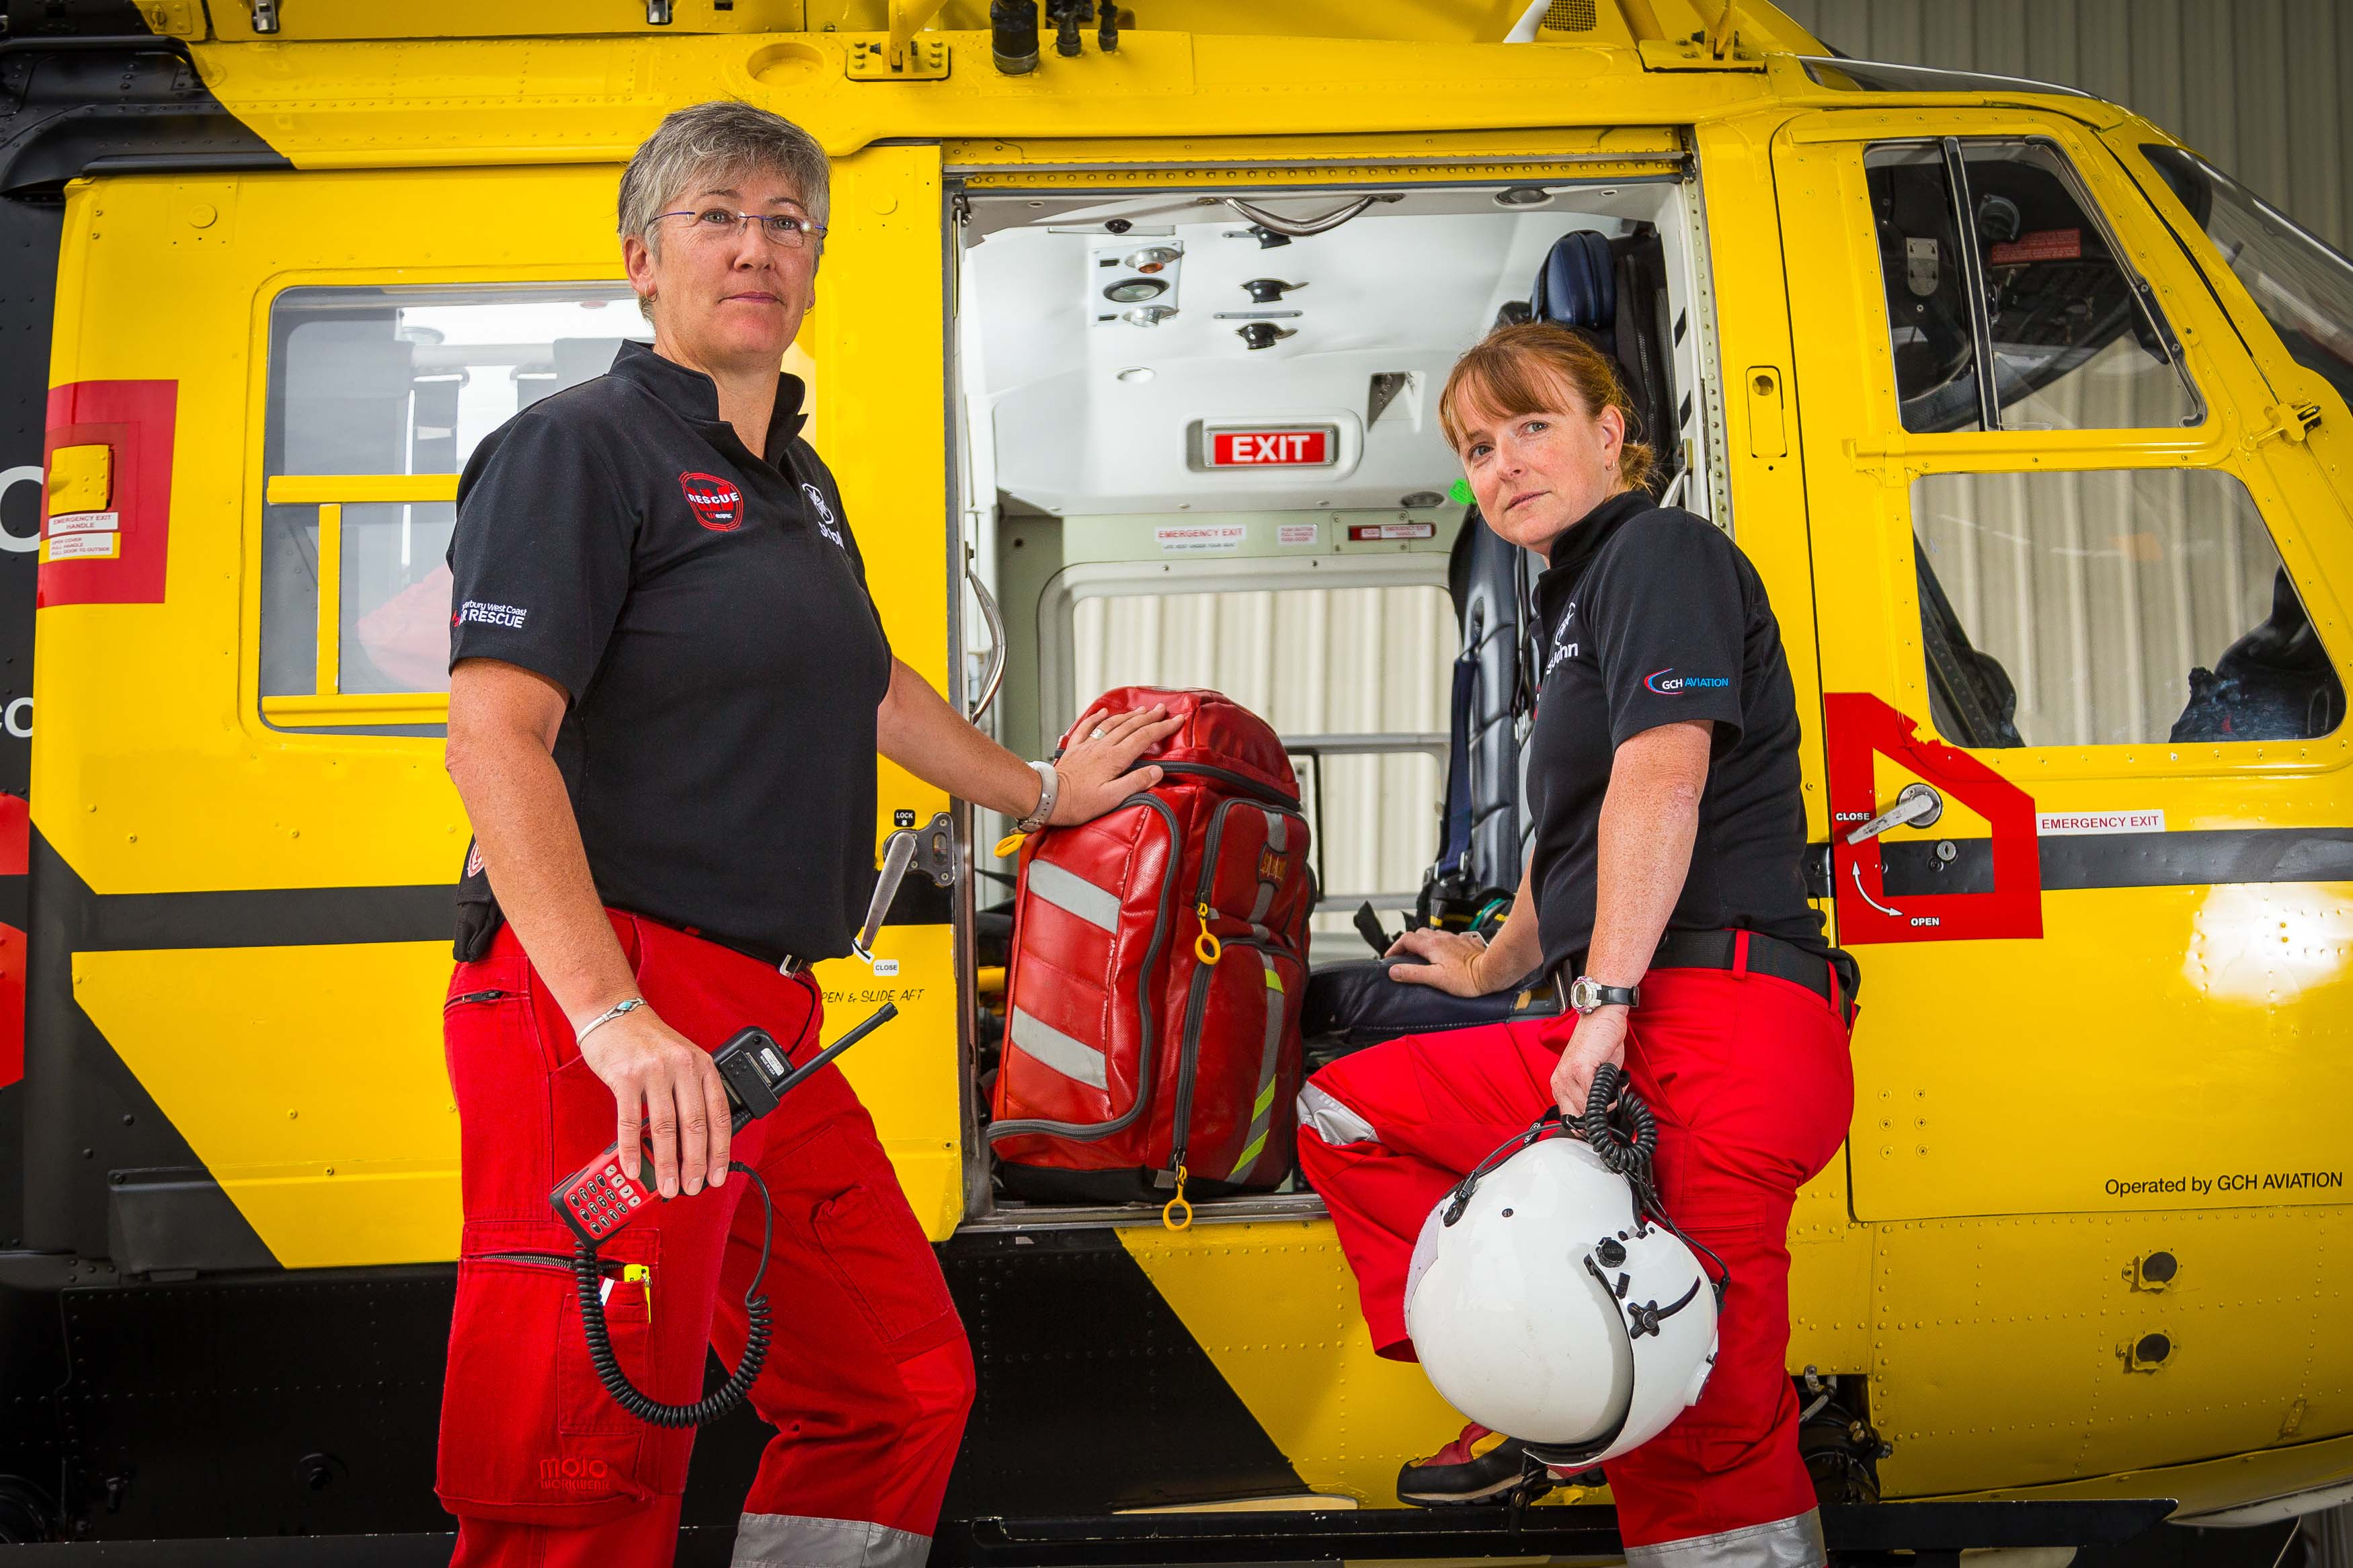 Kath & Juliet loading the helicopter